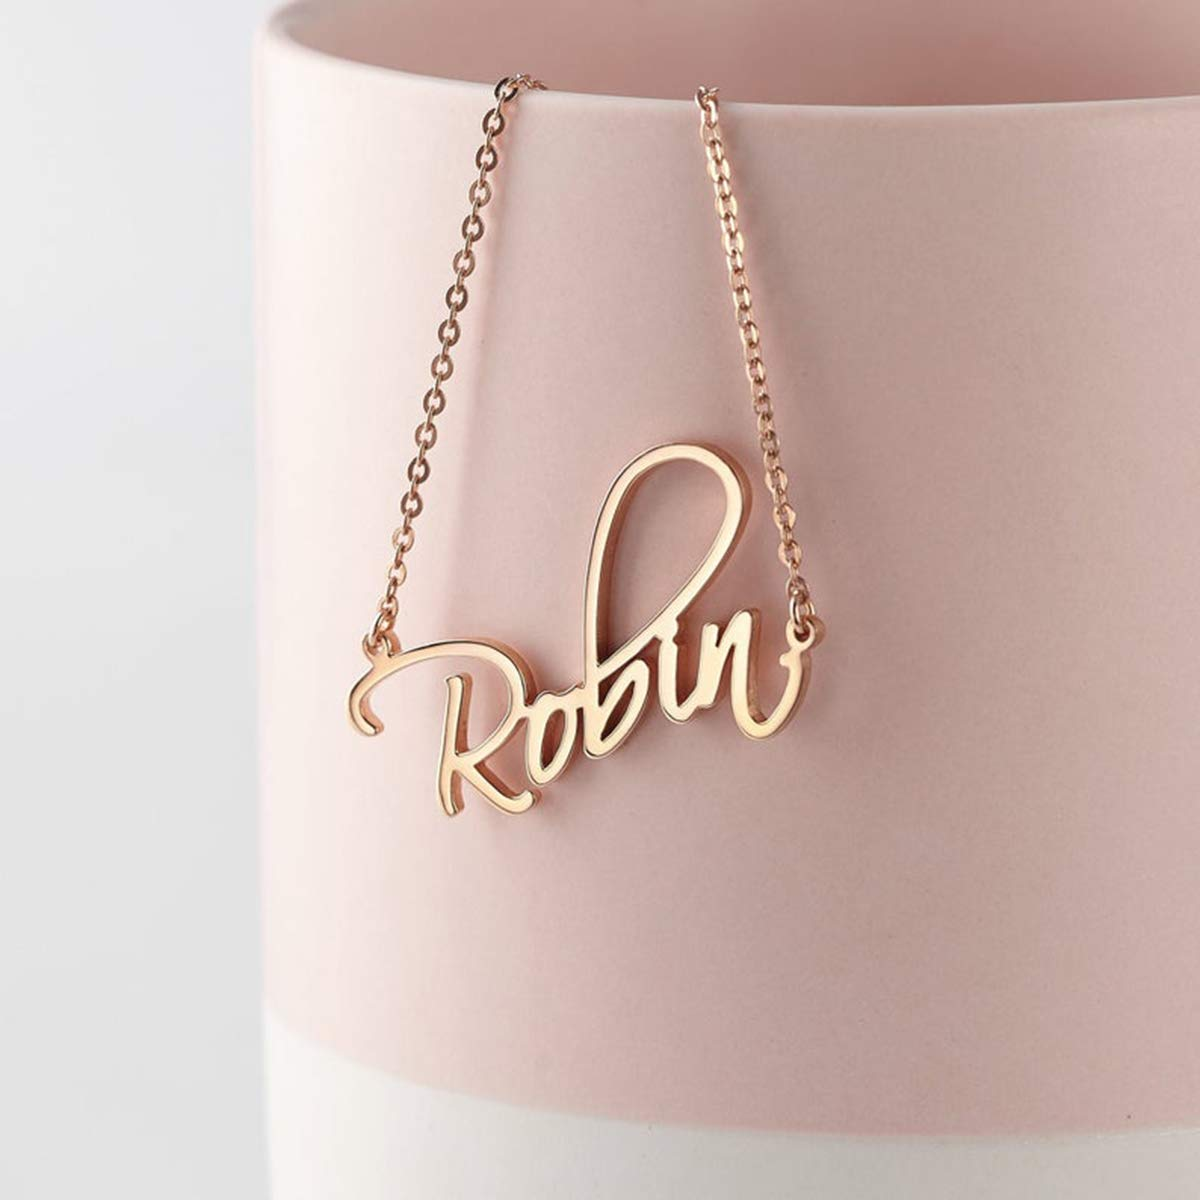 Necklace for Woman Gold Personalized Name Pendant Personalized Jewelry for Her,Personalized Name Custom Necklace Valentine Necklace Gift